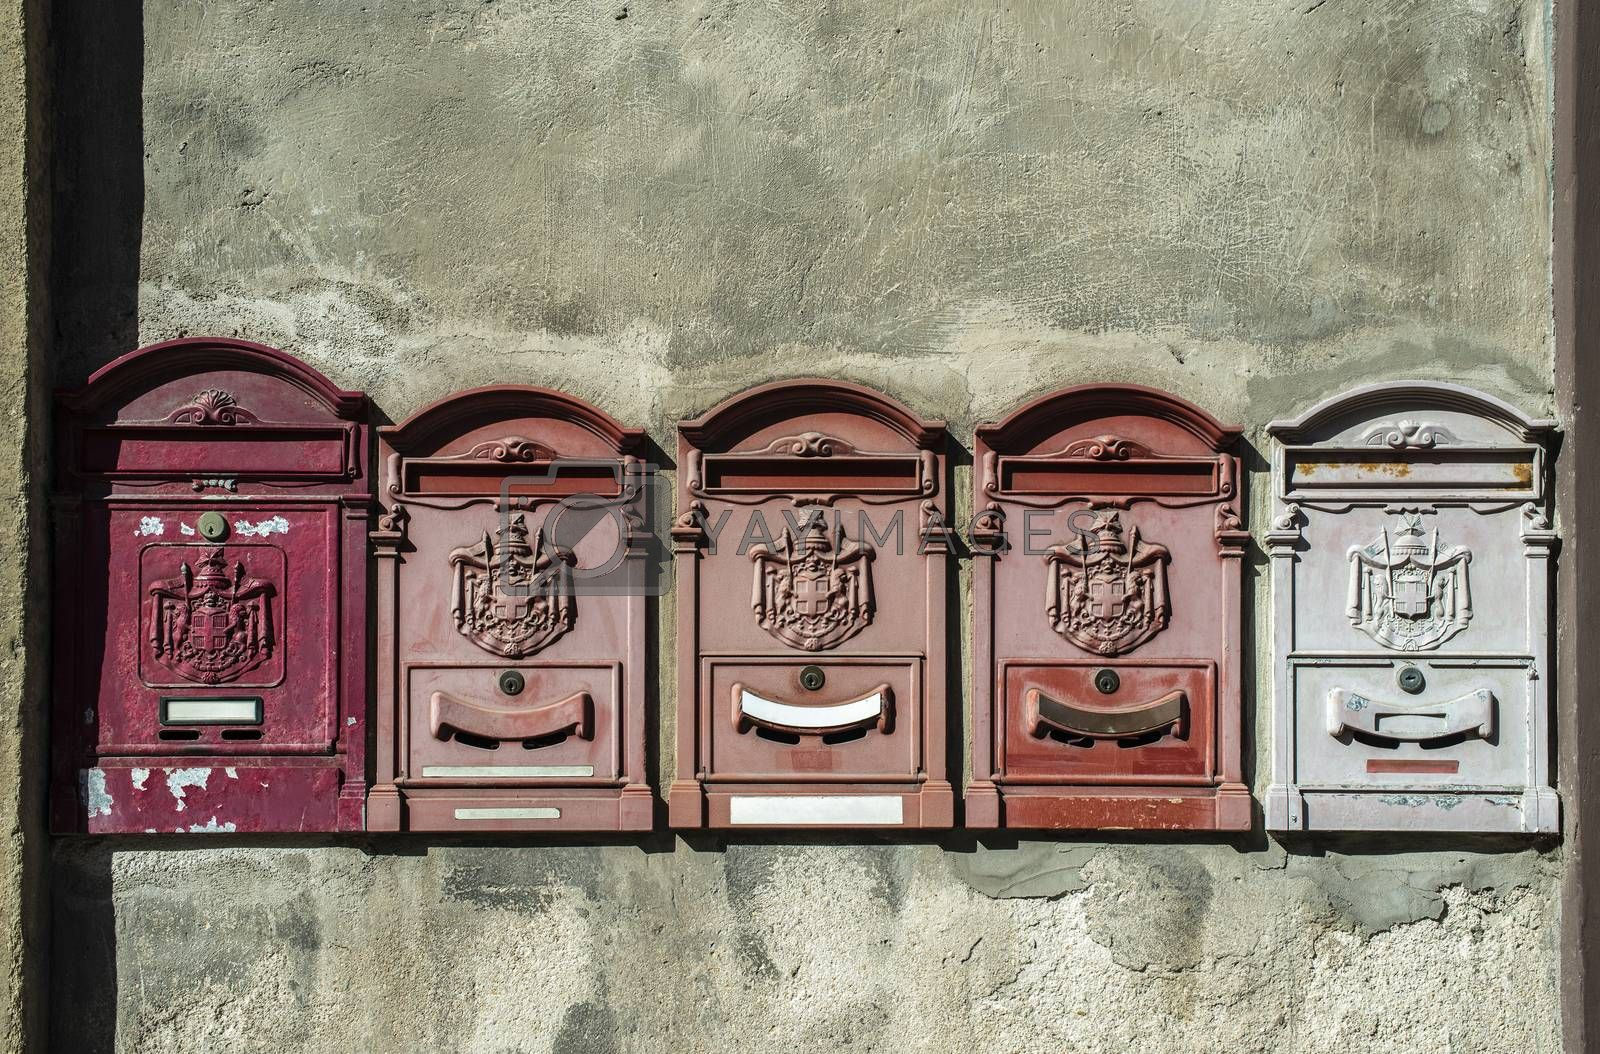 Old vintage mailboxes in Italy. Metal red mailboxes on grey facade. Hard sunlight. Empty plates. Italian house wall. Vintage mail correspondence concept.